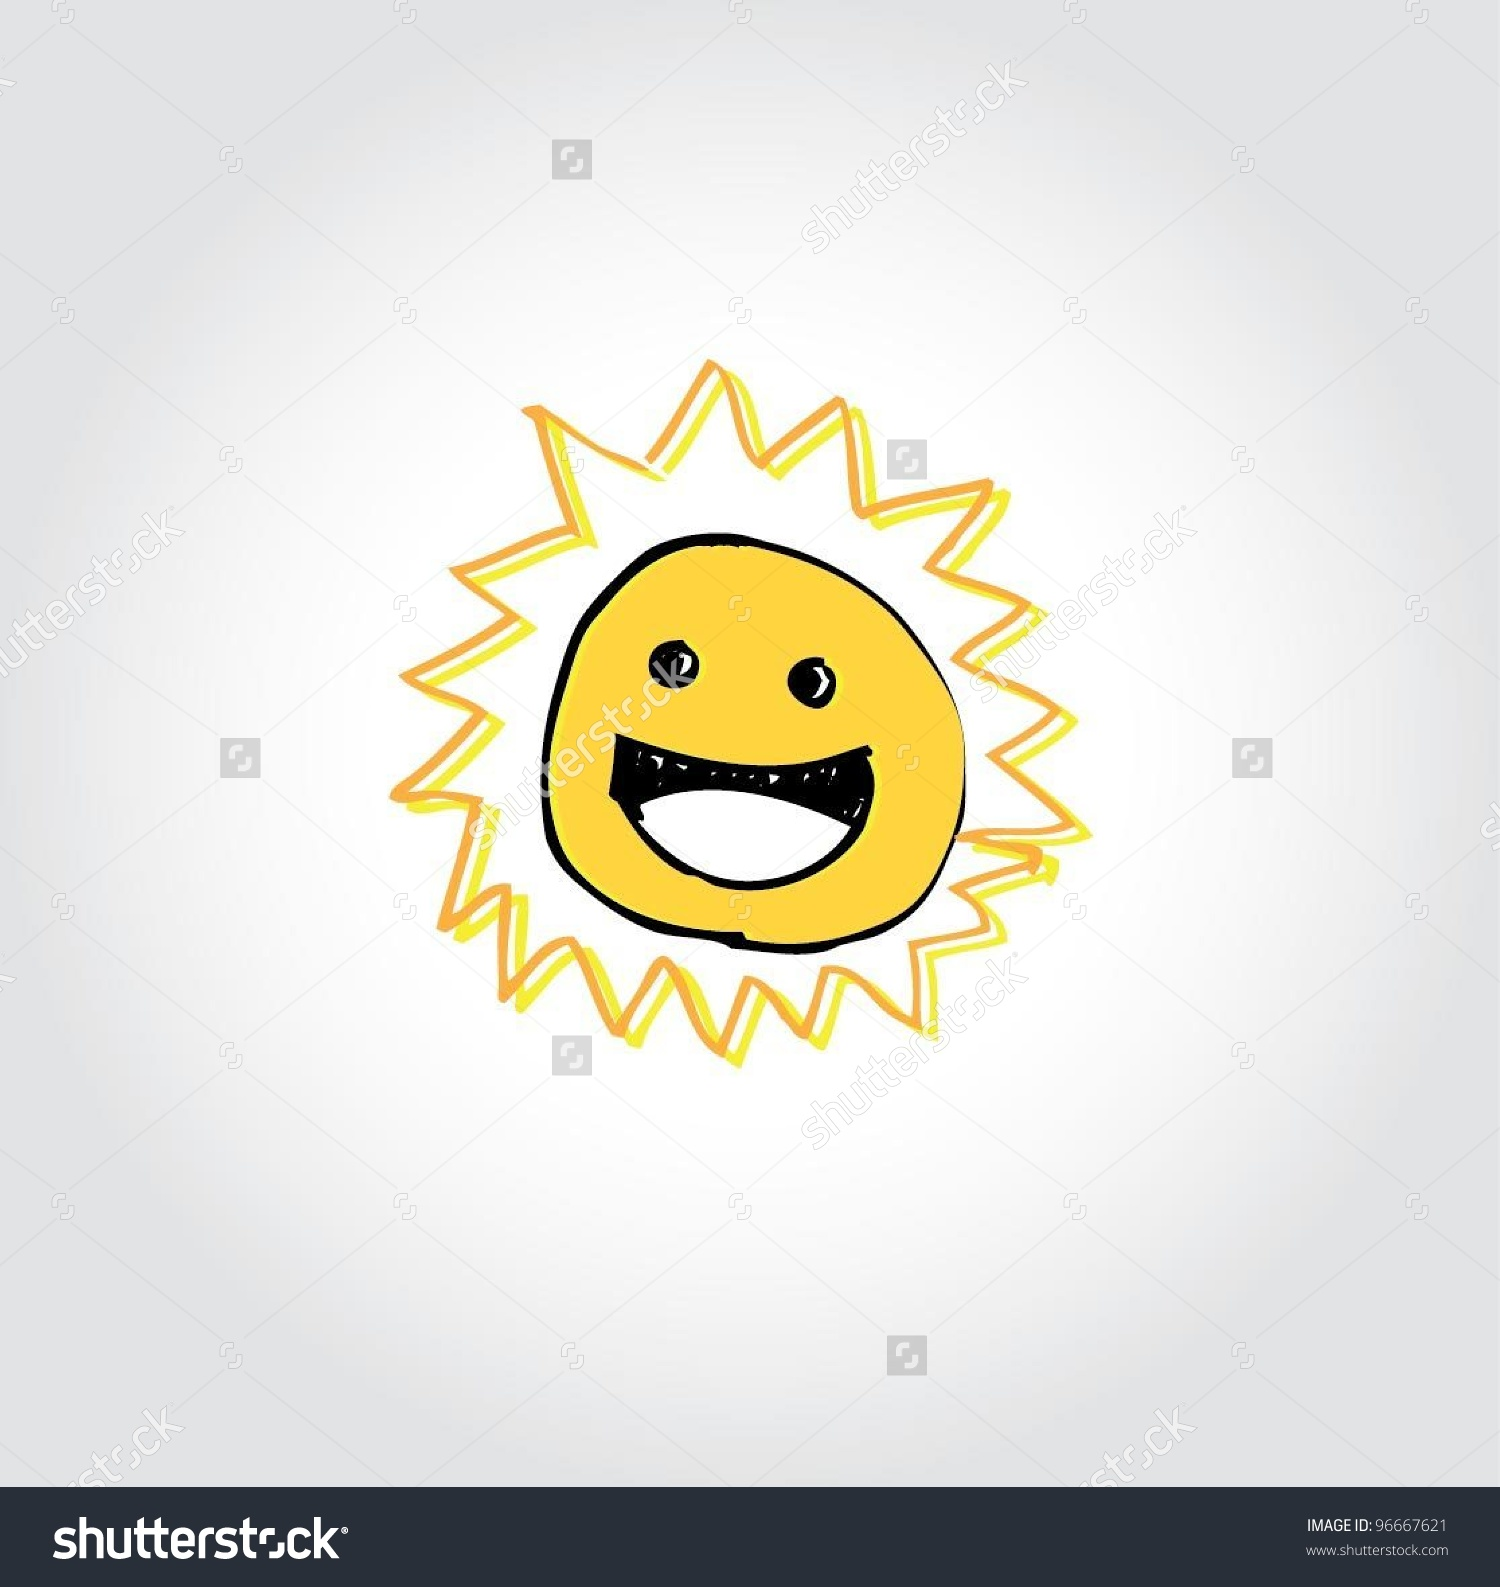 Yellow Sun Nature Clip Art Vector Stock Vector 96667621.